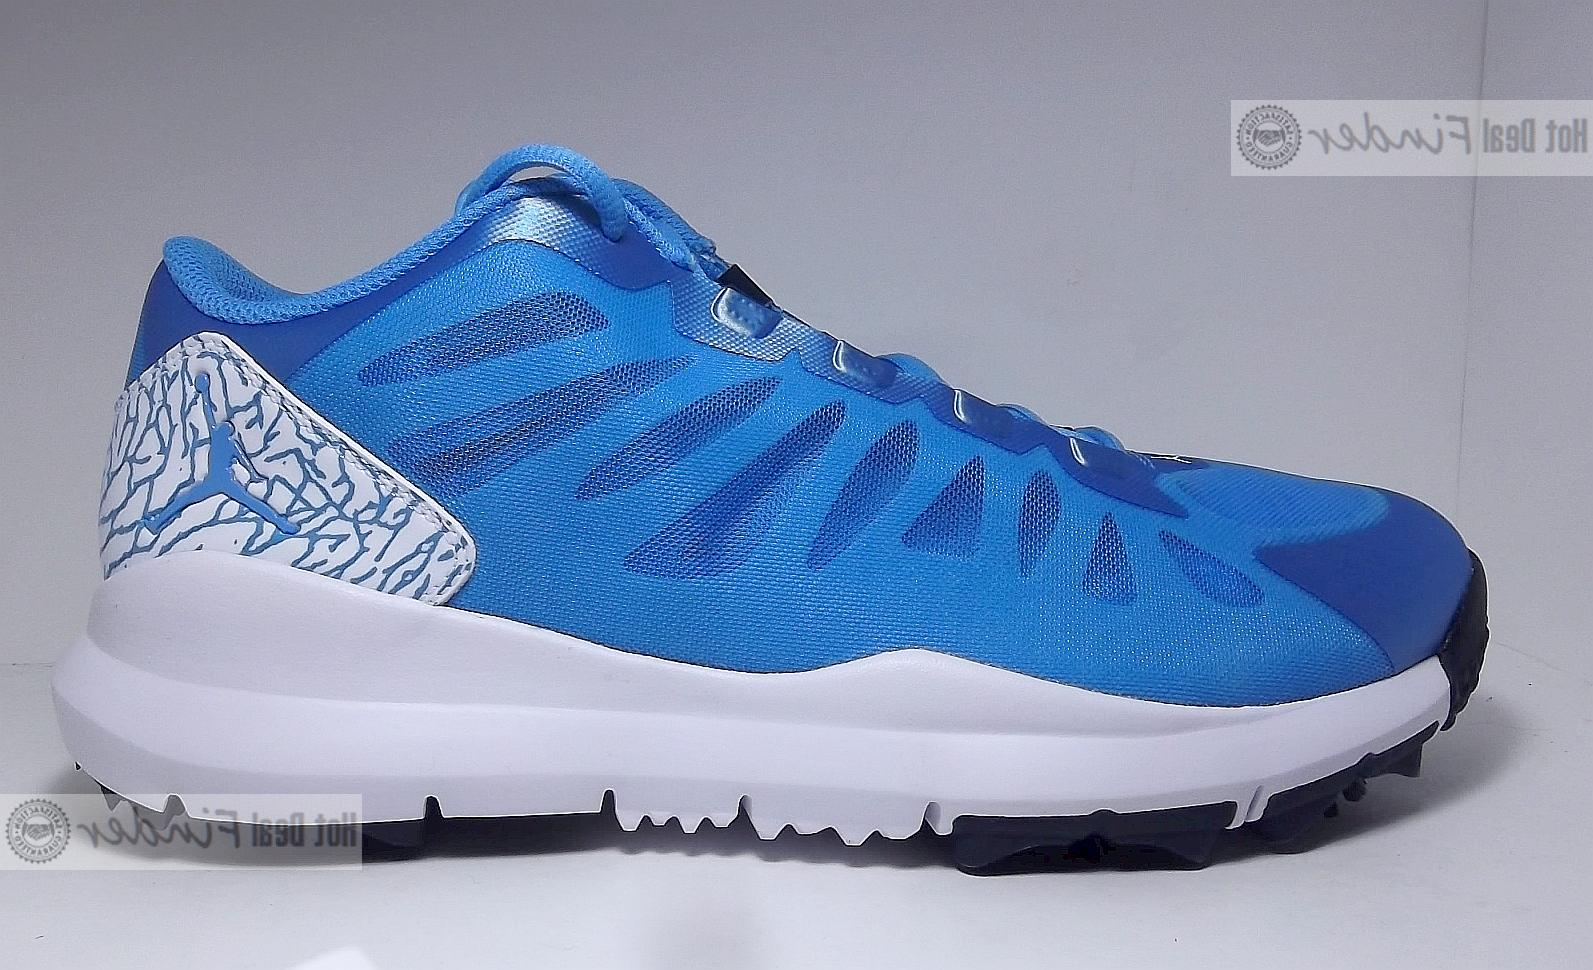 NEW DOMINATE PRO SHOES